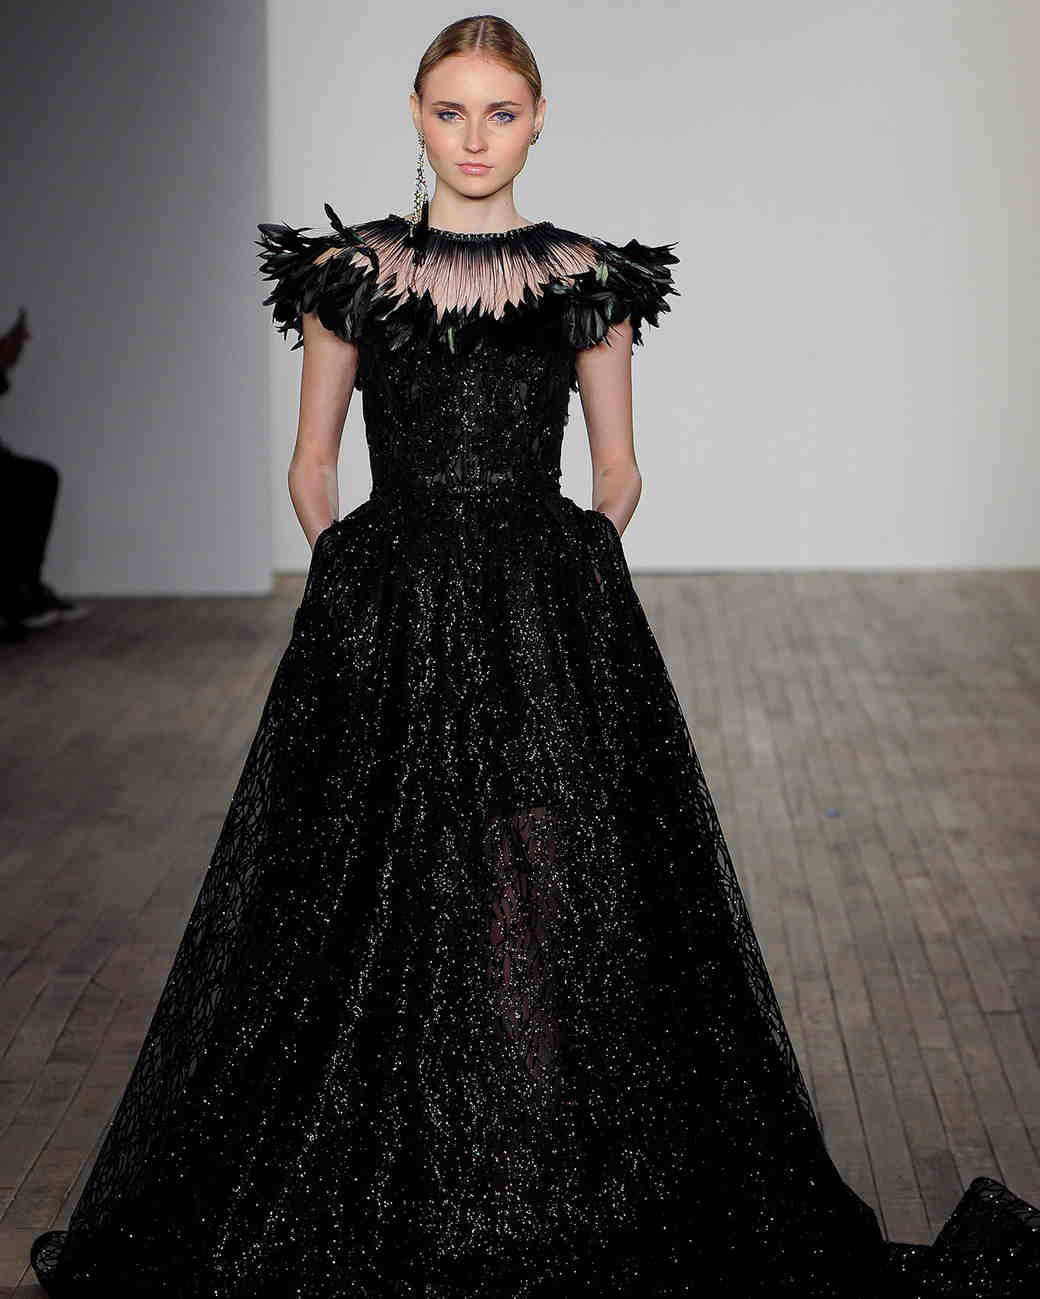 ba31a6e3d08 Chic Black Wedding Dress for the Edgy Bride